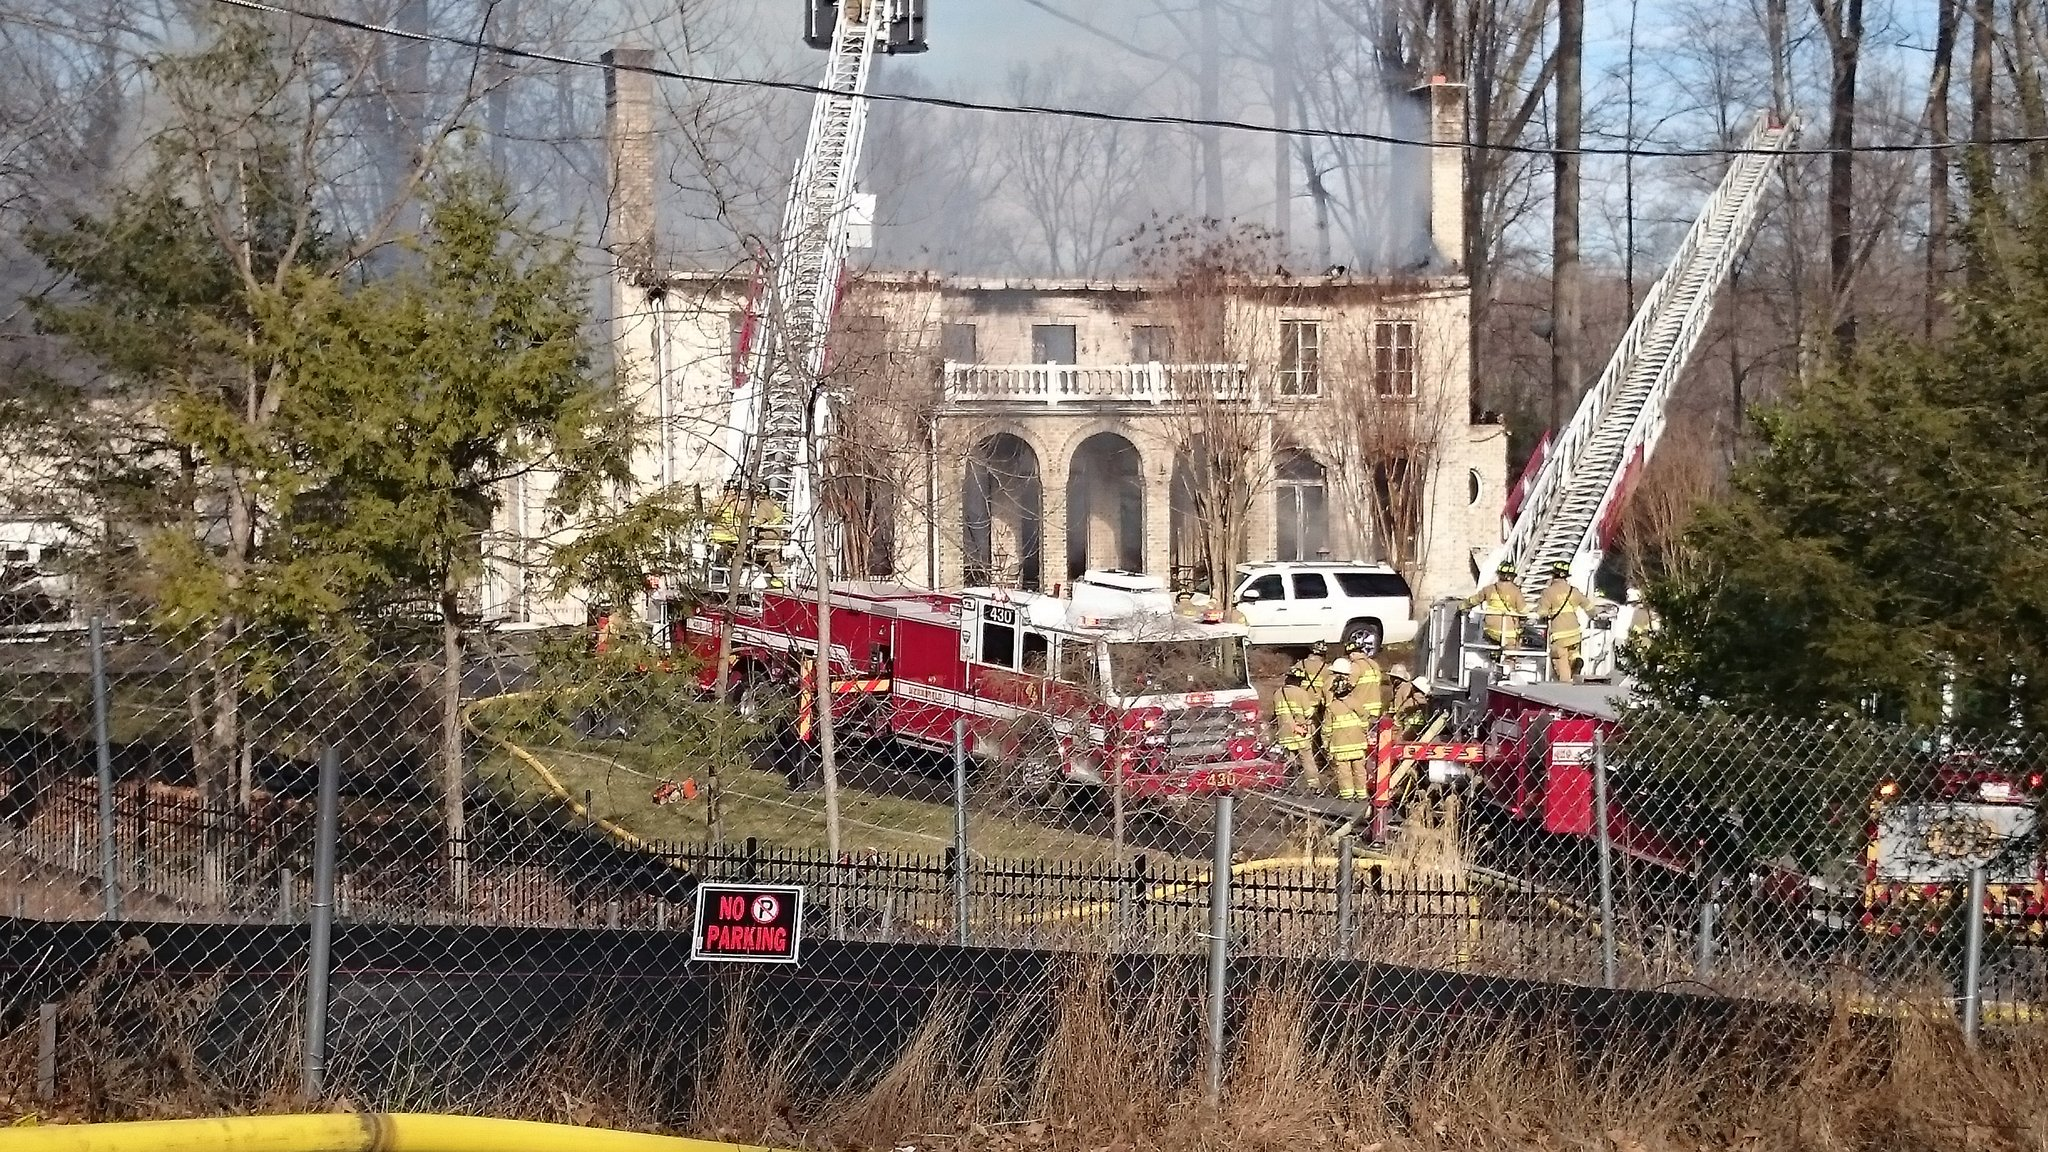 House Fire Fills Sky Over Mclean Va With Smoke Wtop